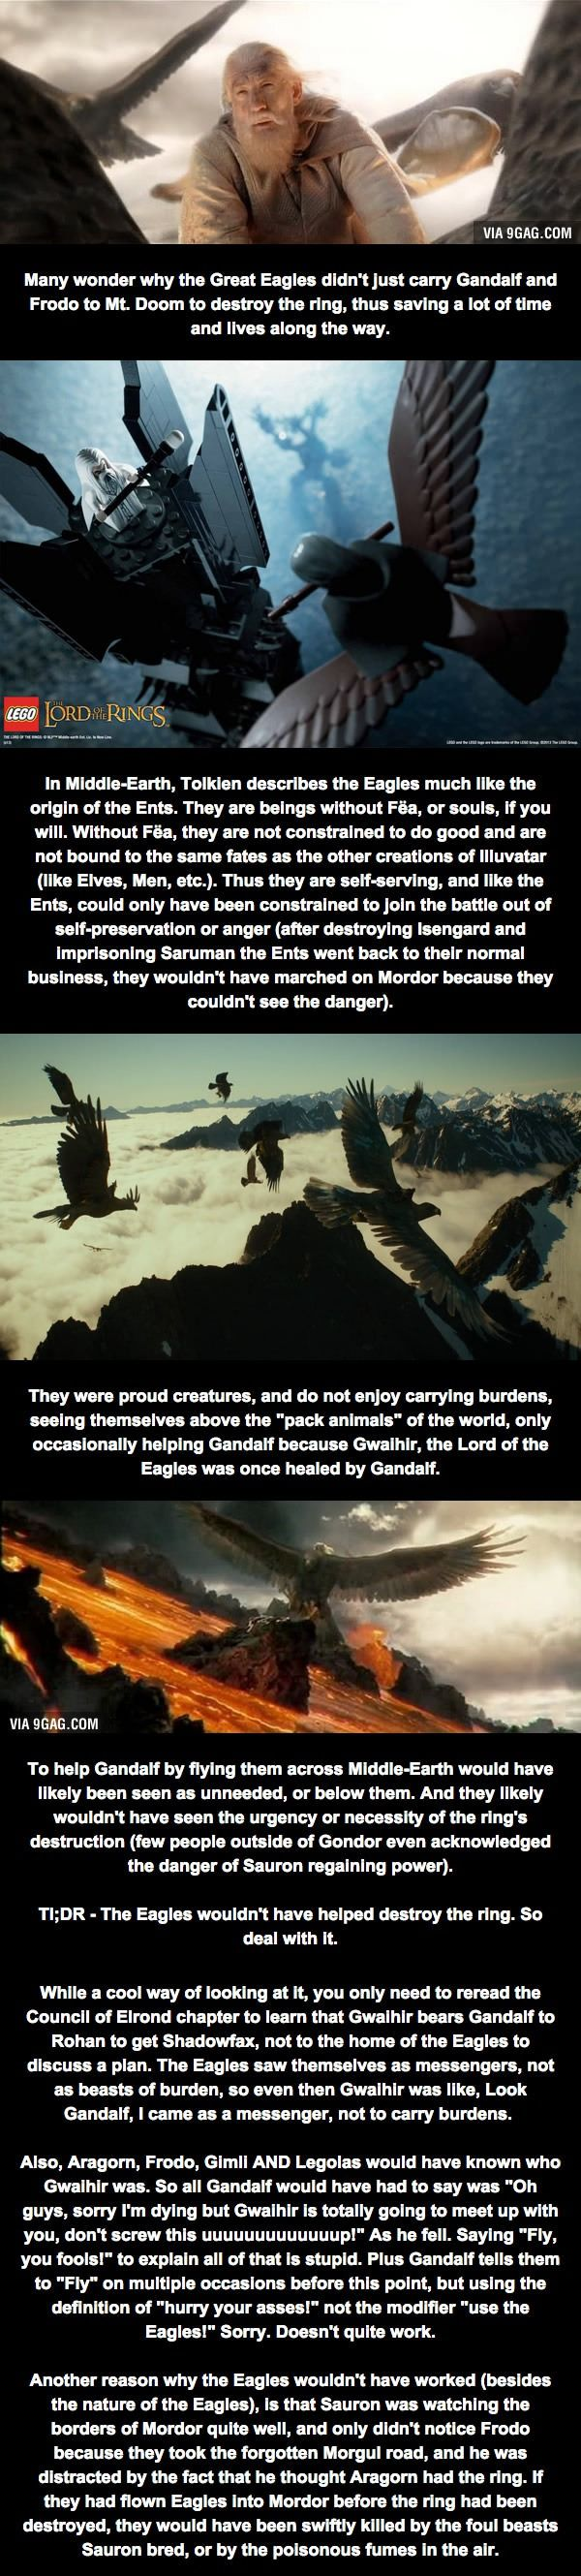 Relatively Unknown LoTR Fact (Part 1) - The Great Eagles. That theory that has been running around about Gandalf and the Eagles has annoyed me more than I can say. Please read this!!!